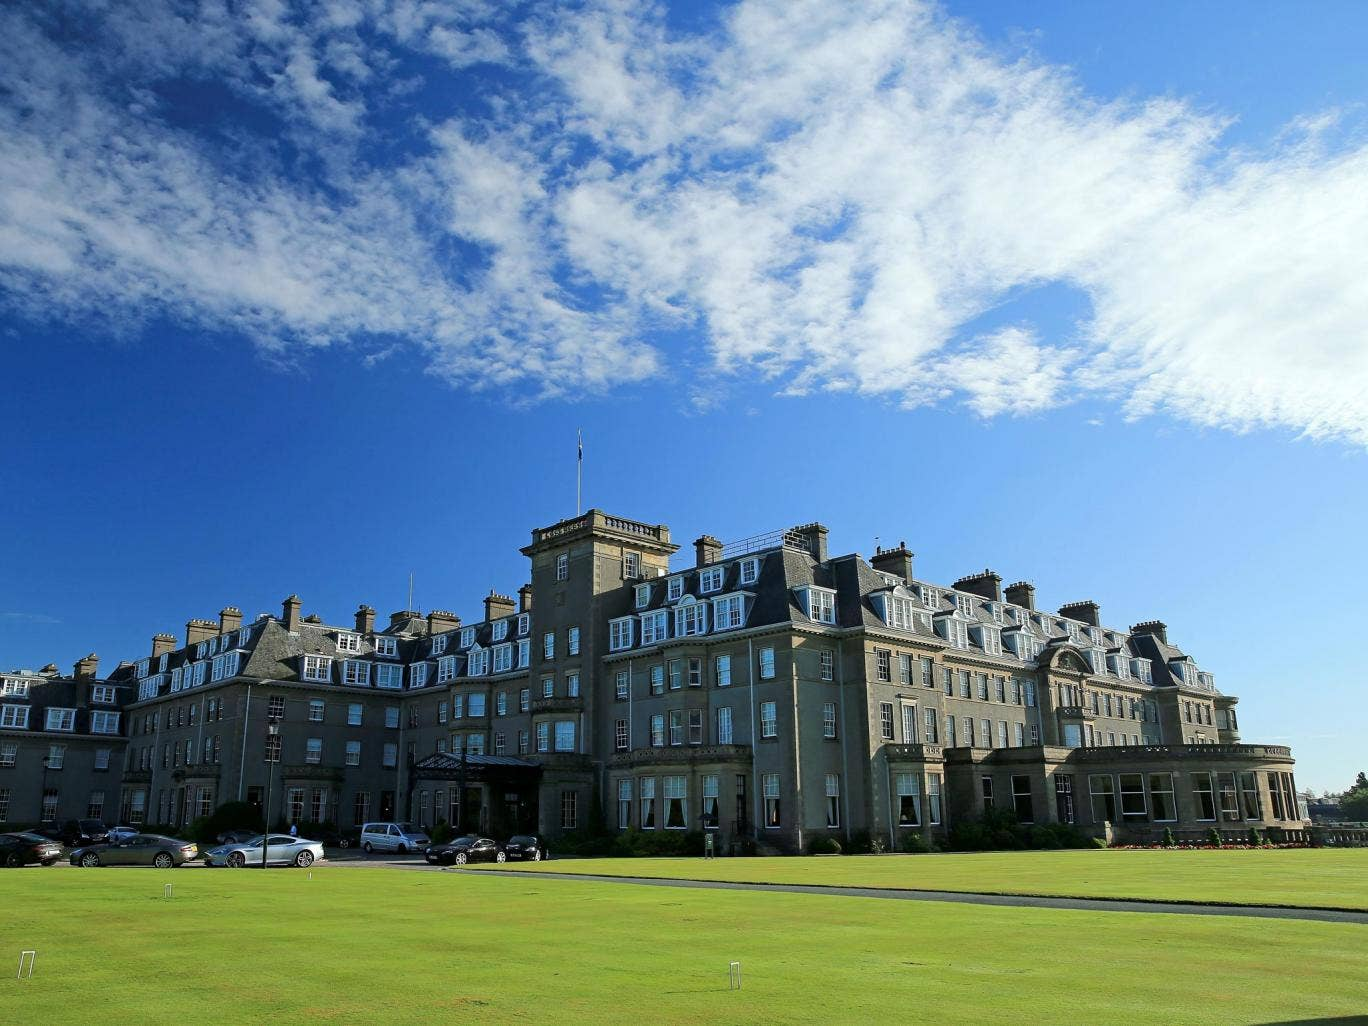 Gleneagles Hotel in Perthshire, the venue of the JPMorgan pensions conference attended by David Willetts